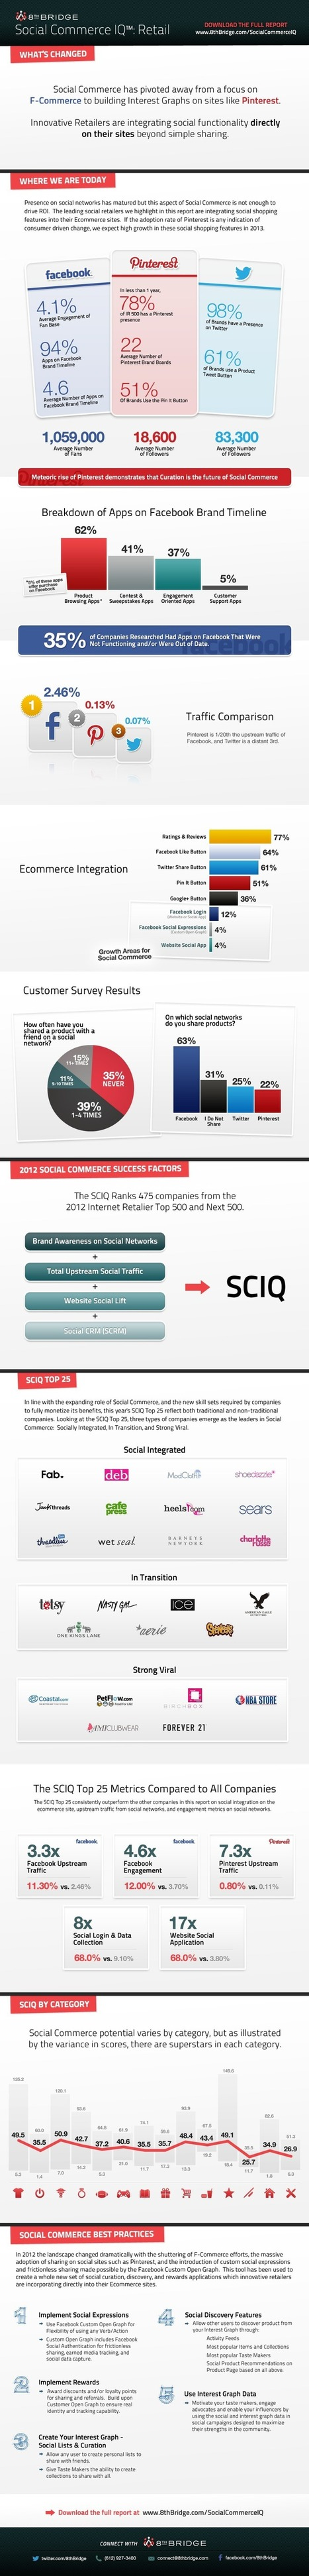 L'eCommerce del 2013? Socially-integrated! [INFOGRAFICA] | Website to follow... | Scoop.it